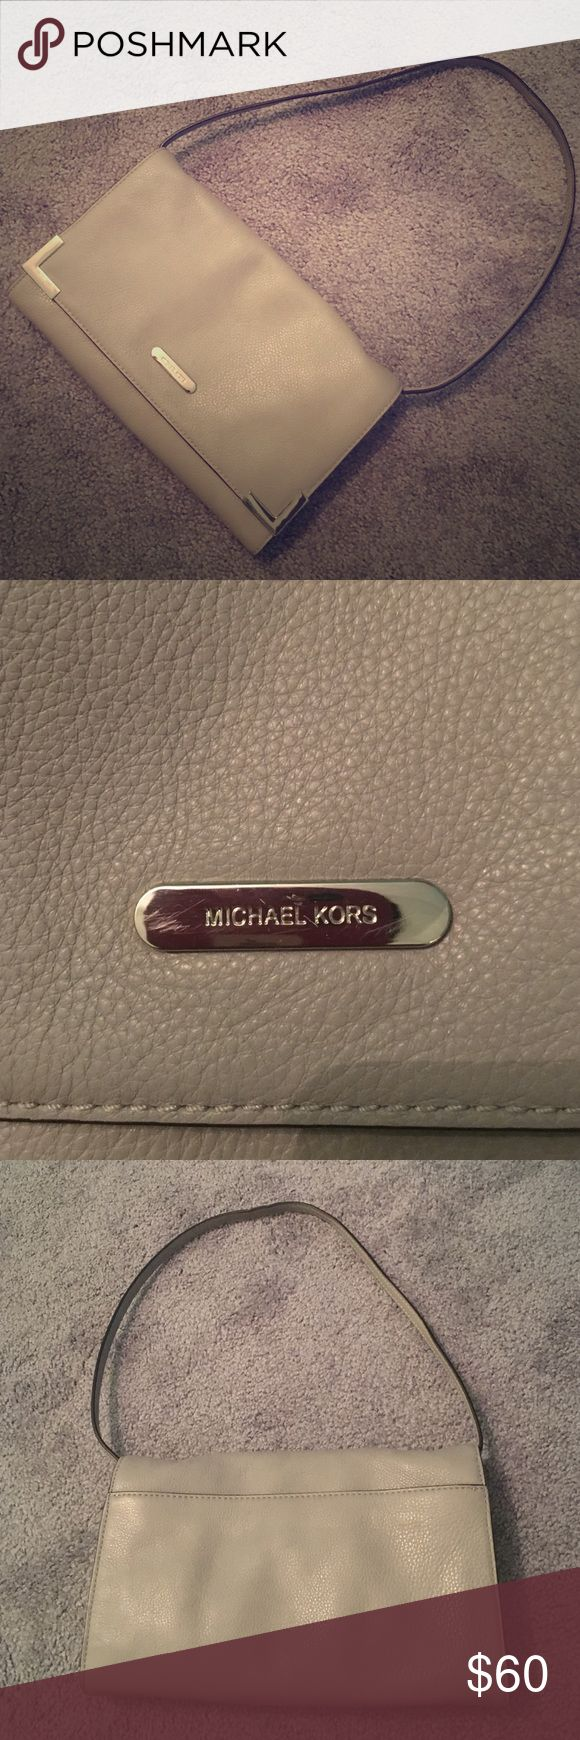 Like new Michael Kors small grey shoulder bag Like new Michael Kors small grey shoulder bag. Minor scratch on front hardware but definitely not noticeable. Used only once. Michael Kors Bags Shoulder Bags